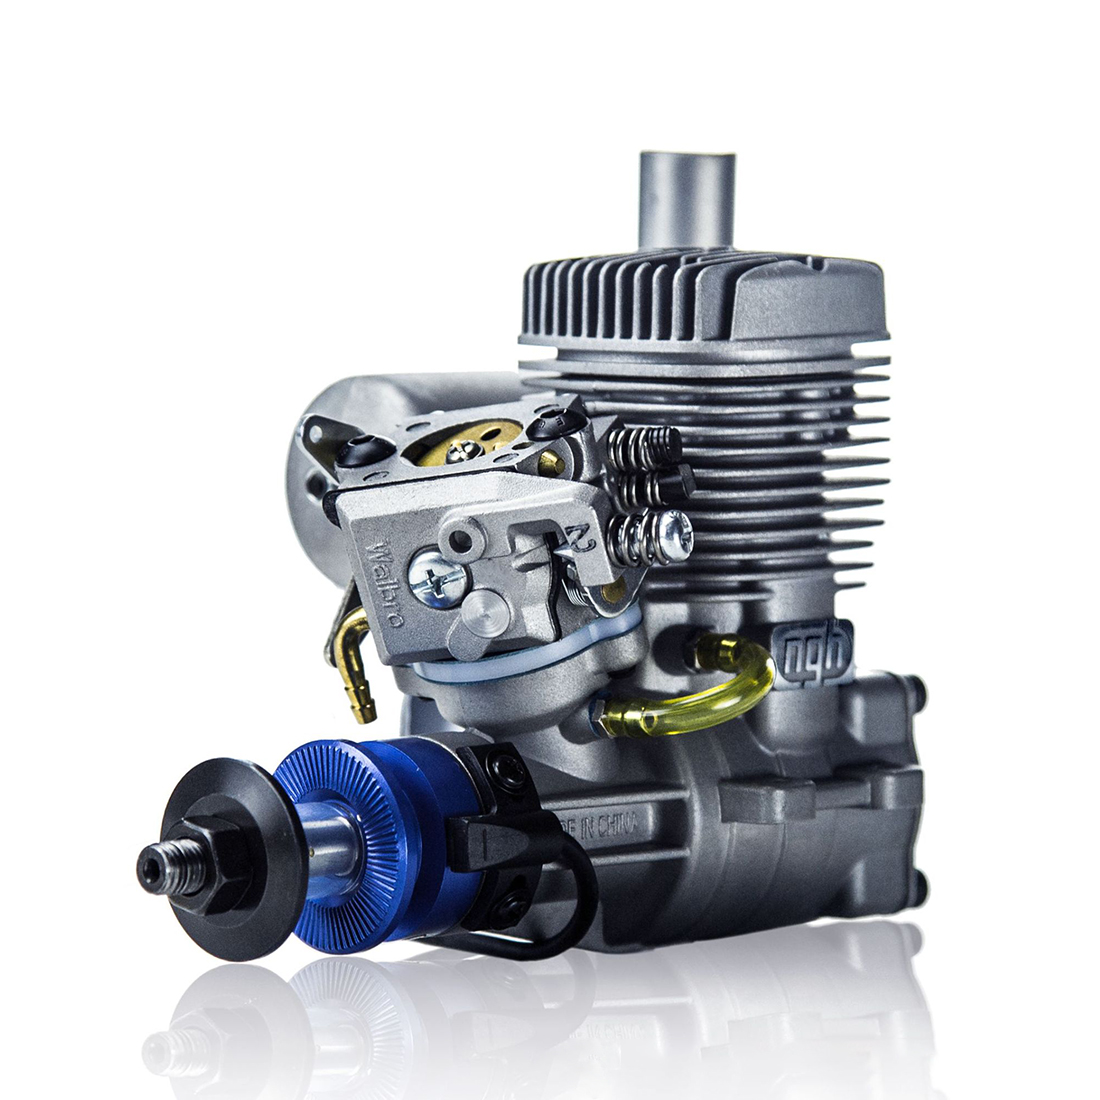 Ngh GT17 17cc Single-Cylinder Two Stroke Air Cooled Gasoline Engine For Fixed Wing Rotorcraft Aircraft